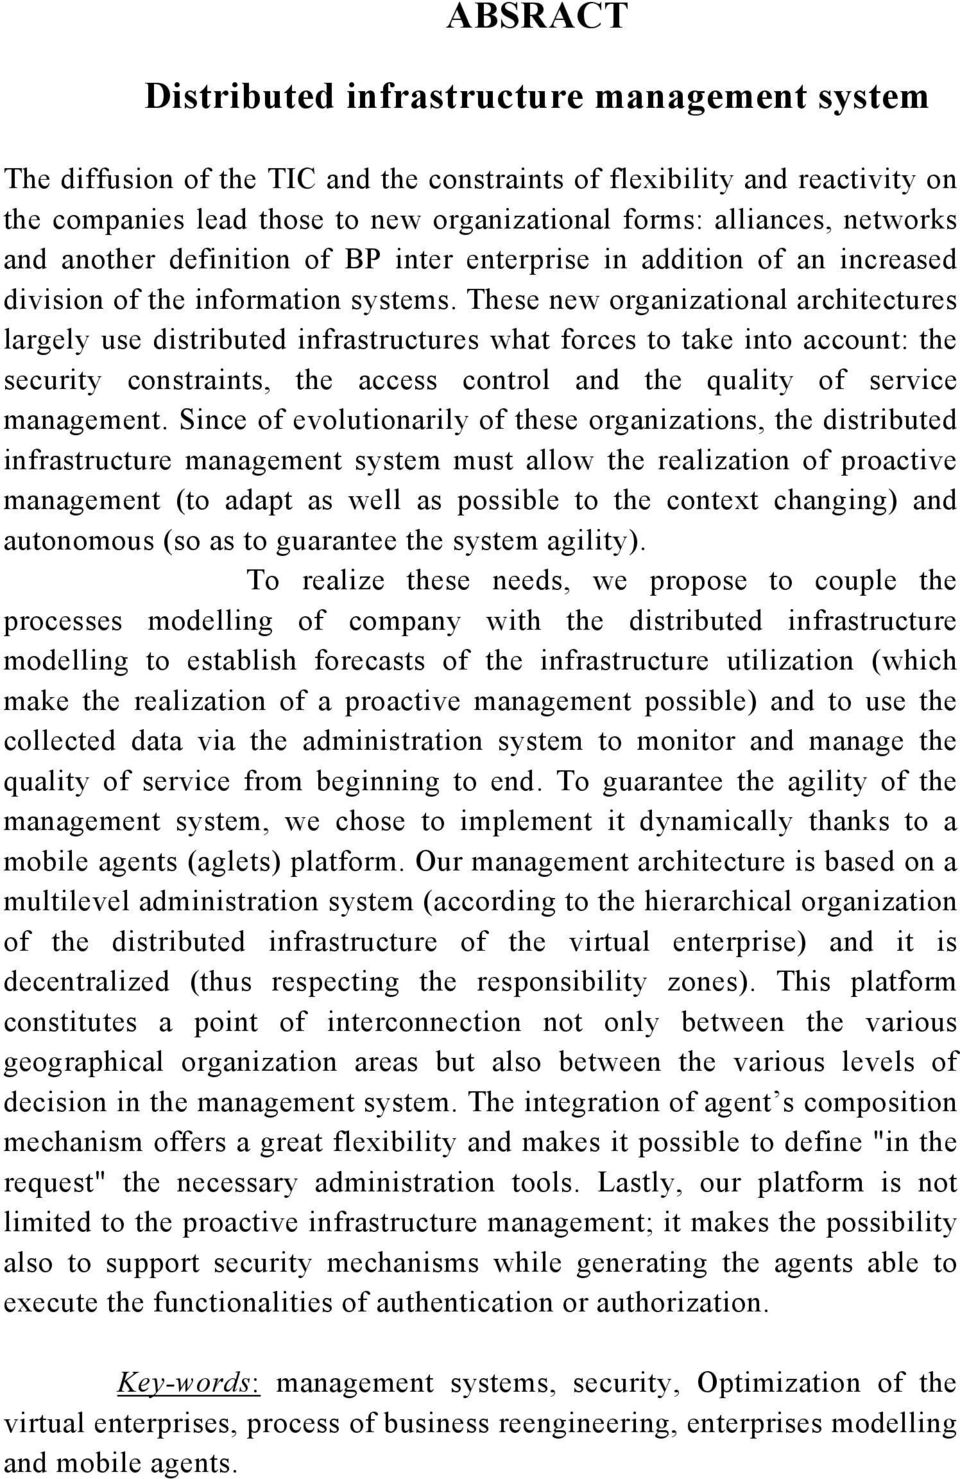 These new organizational architectures largely use distributed infrastructures what forces to take into account: the security constraints, the access control and the quality of service management.